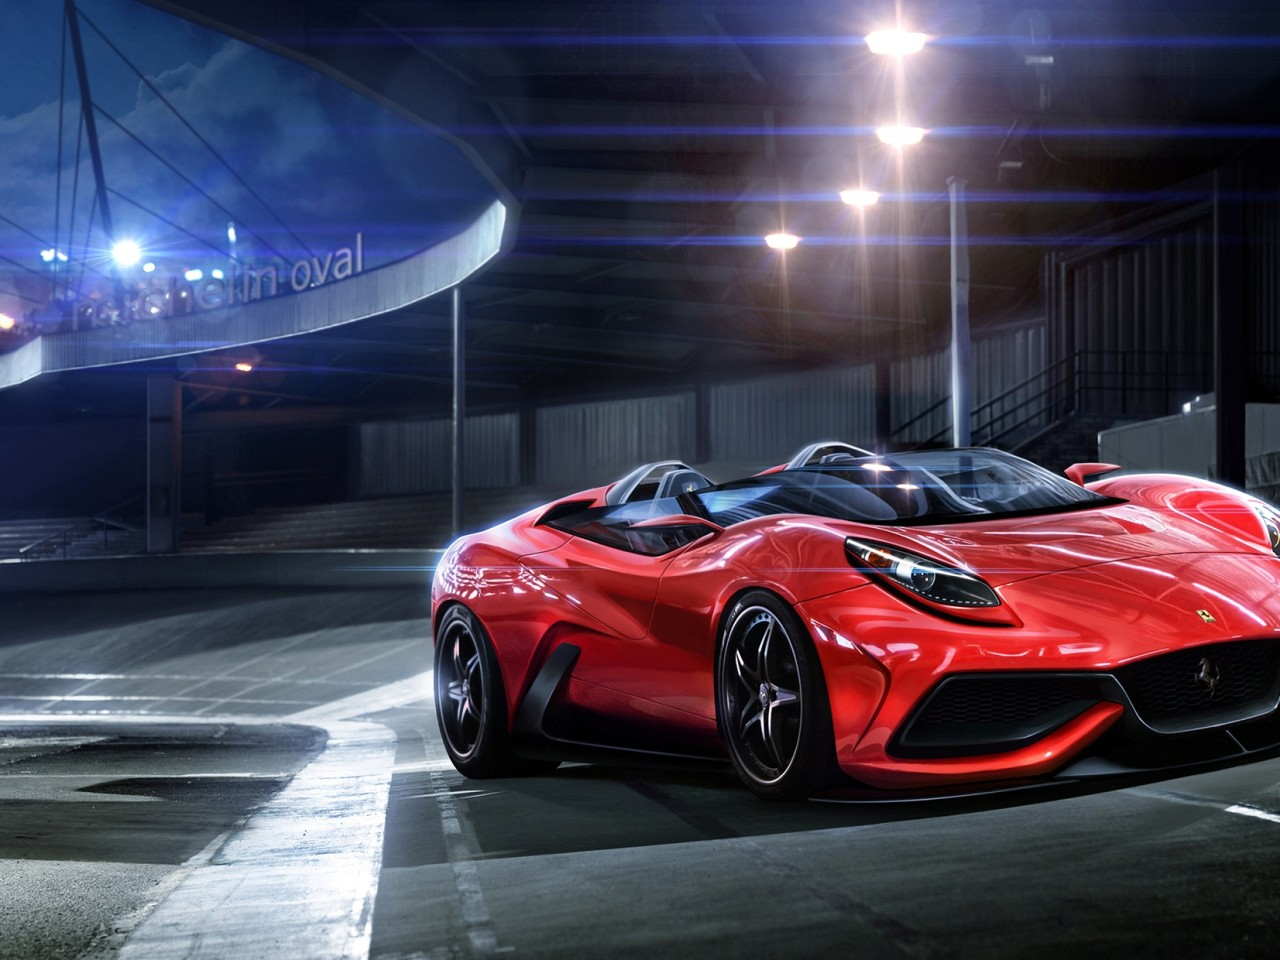 Sleek Red Sports Car Wallpaper High Resolution Wallpaper